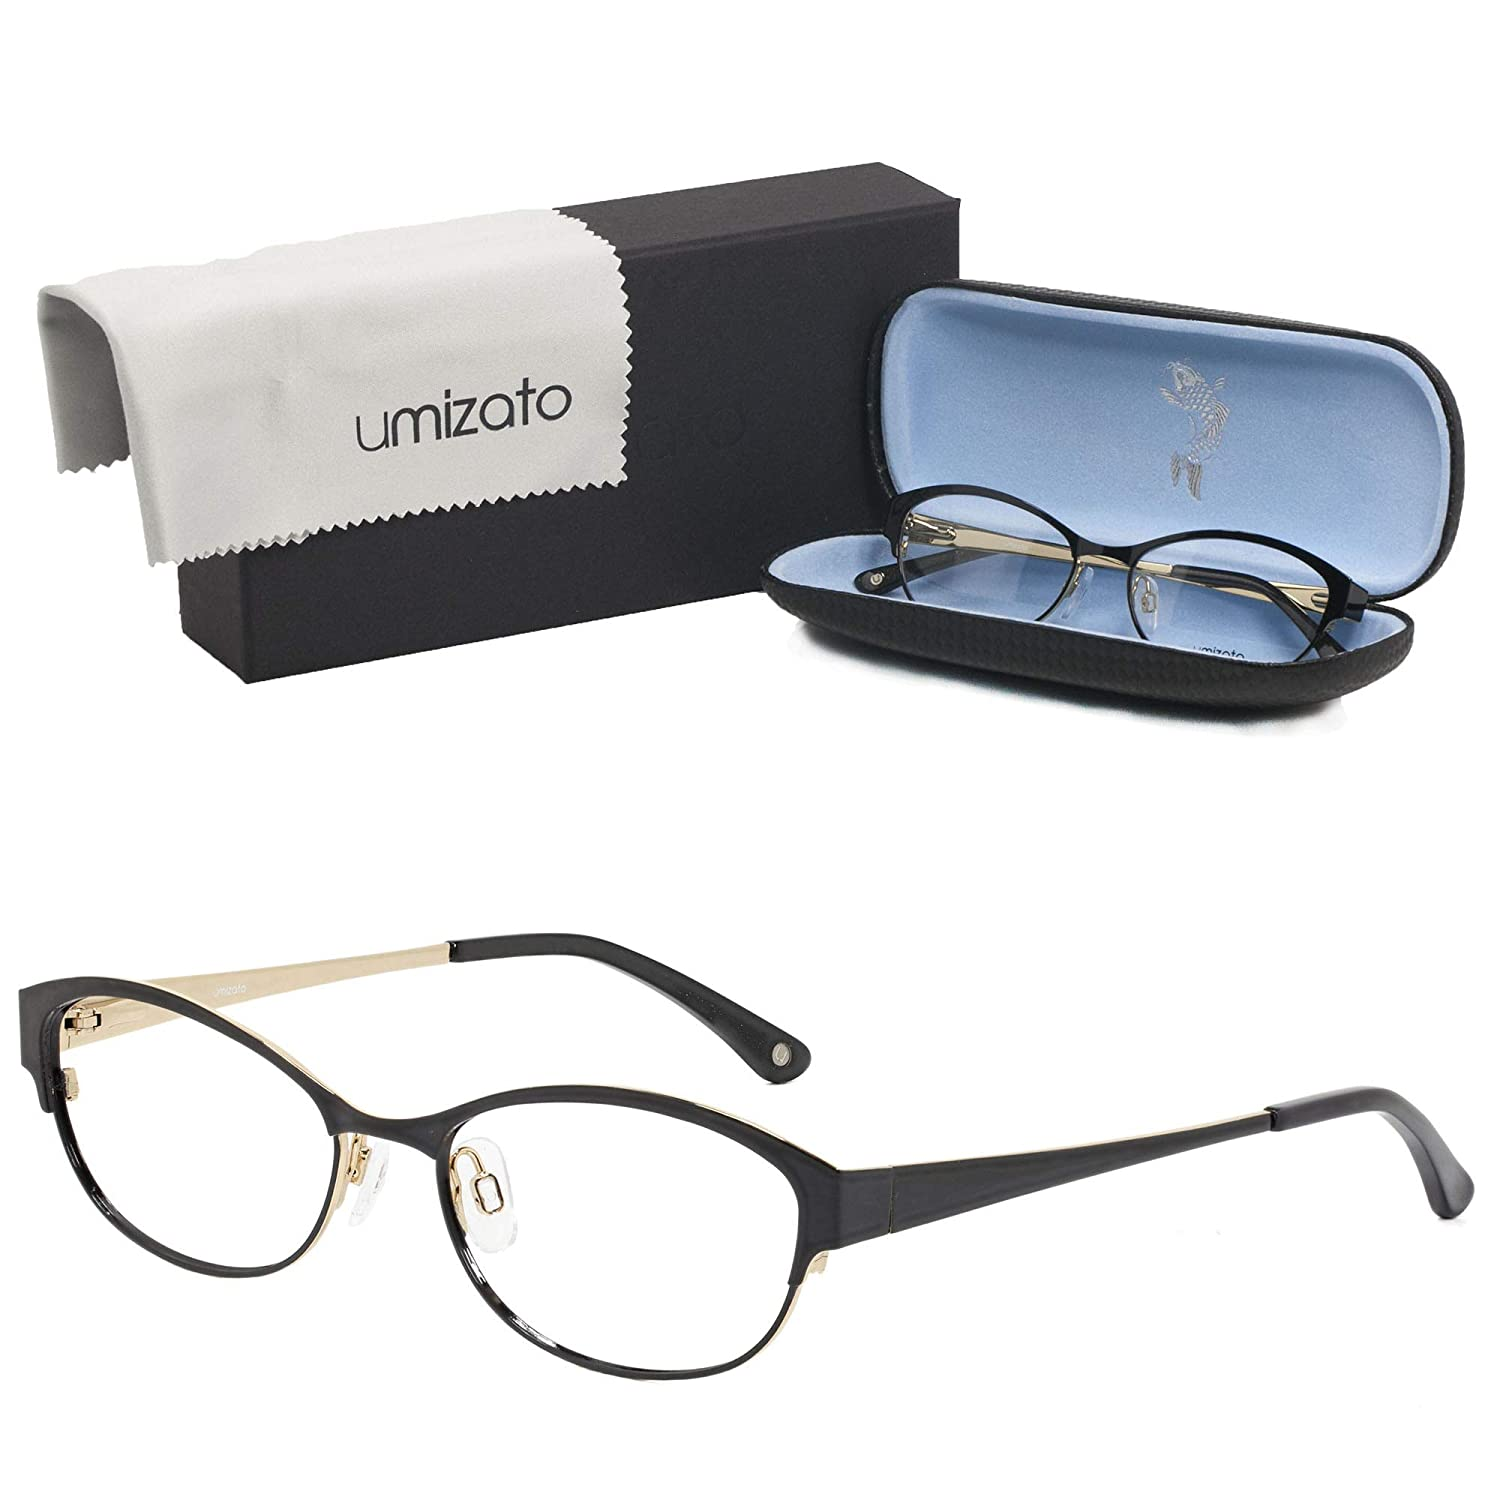 40733bdb1335 Amazon.com: Umizato Prescription Glasses Designer Frames for Women -  Handcrafted Stainless Steel Metal Eyeglasses - Optical Rx (LIMA in Onyx):  Clothing